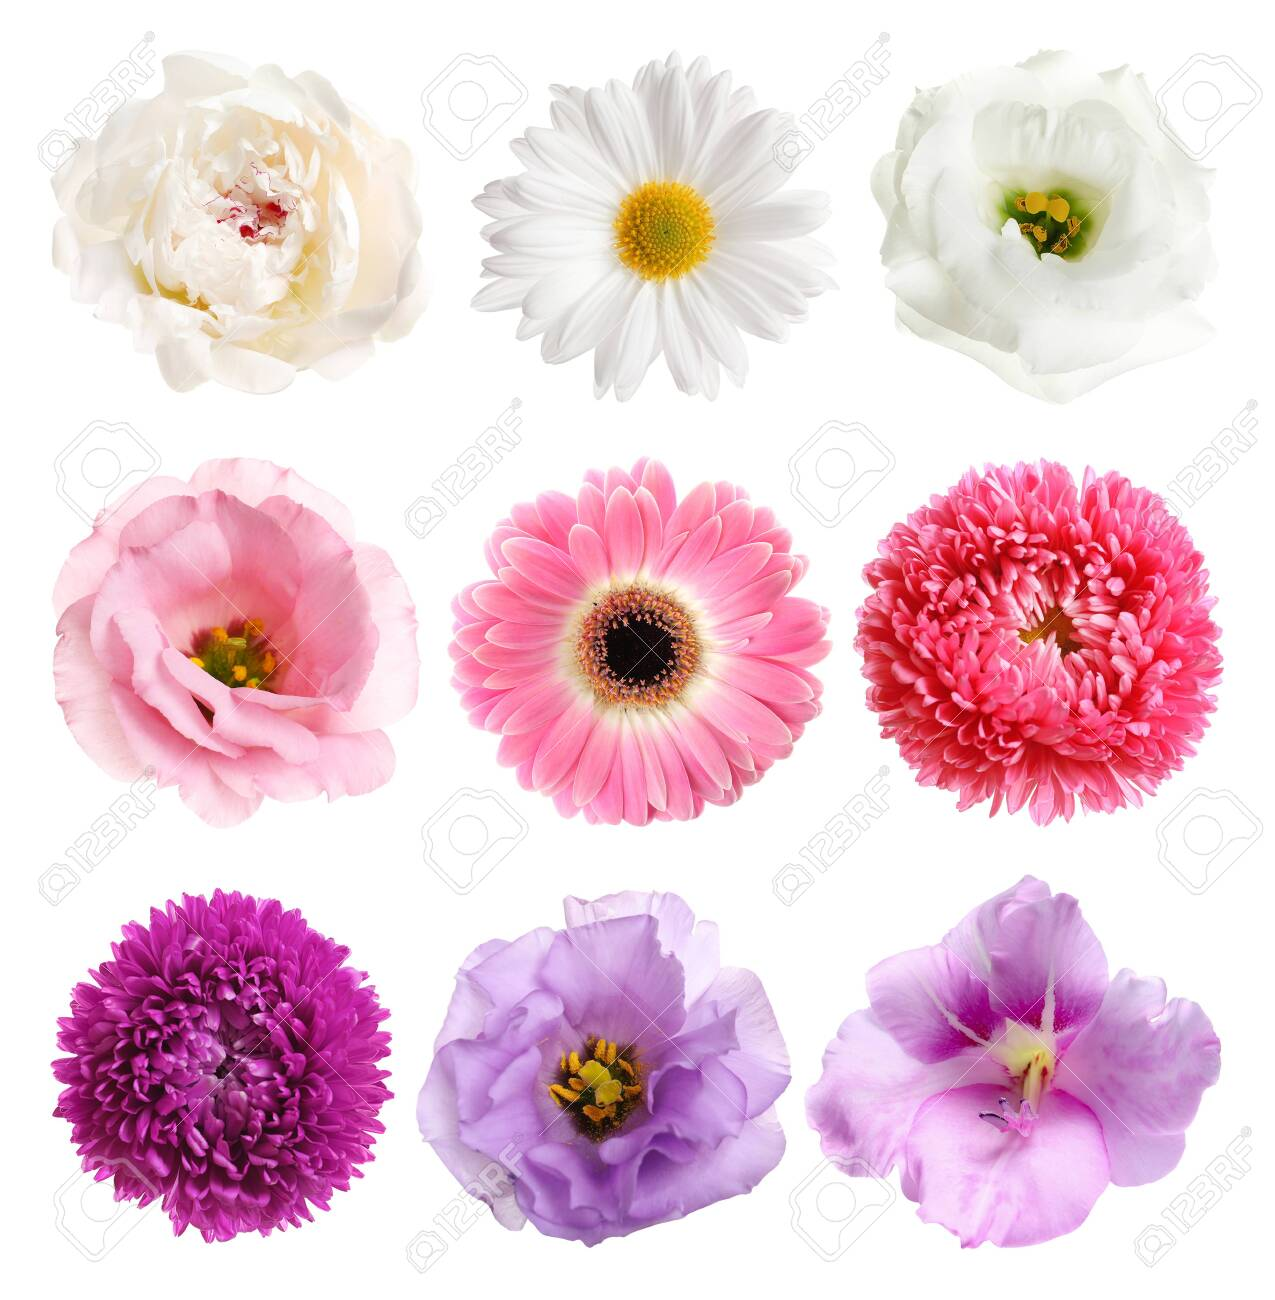 Set of different beautiful flowers on white background - 128190687